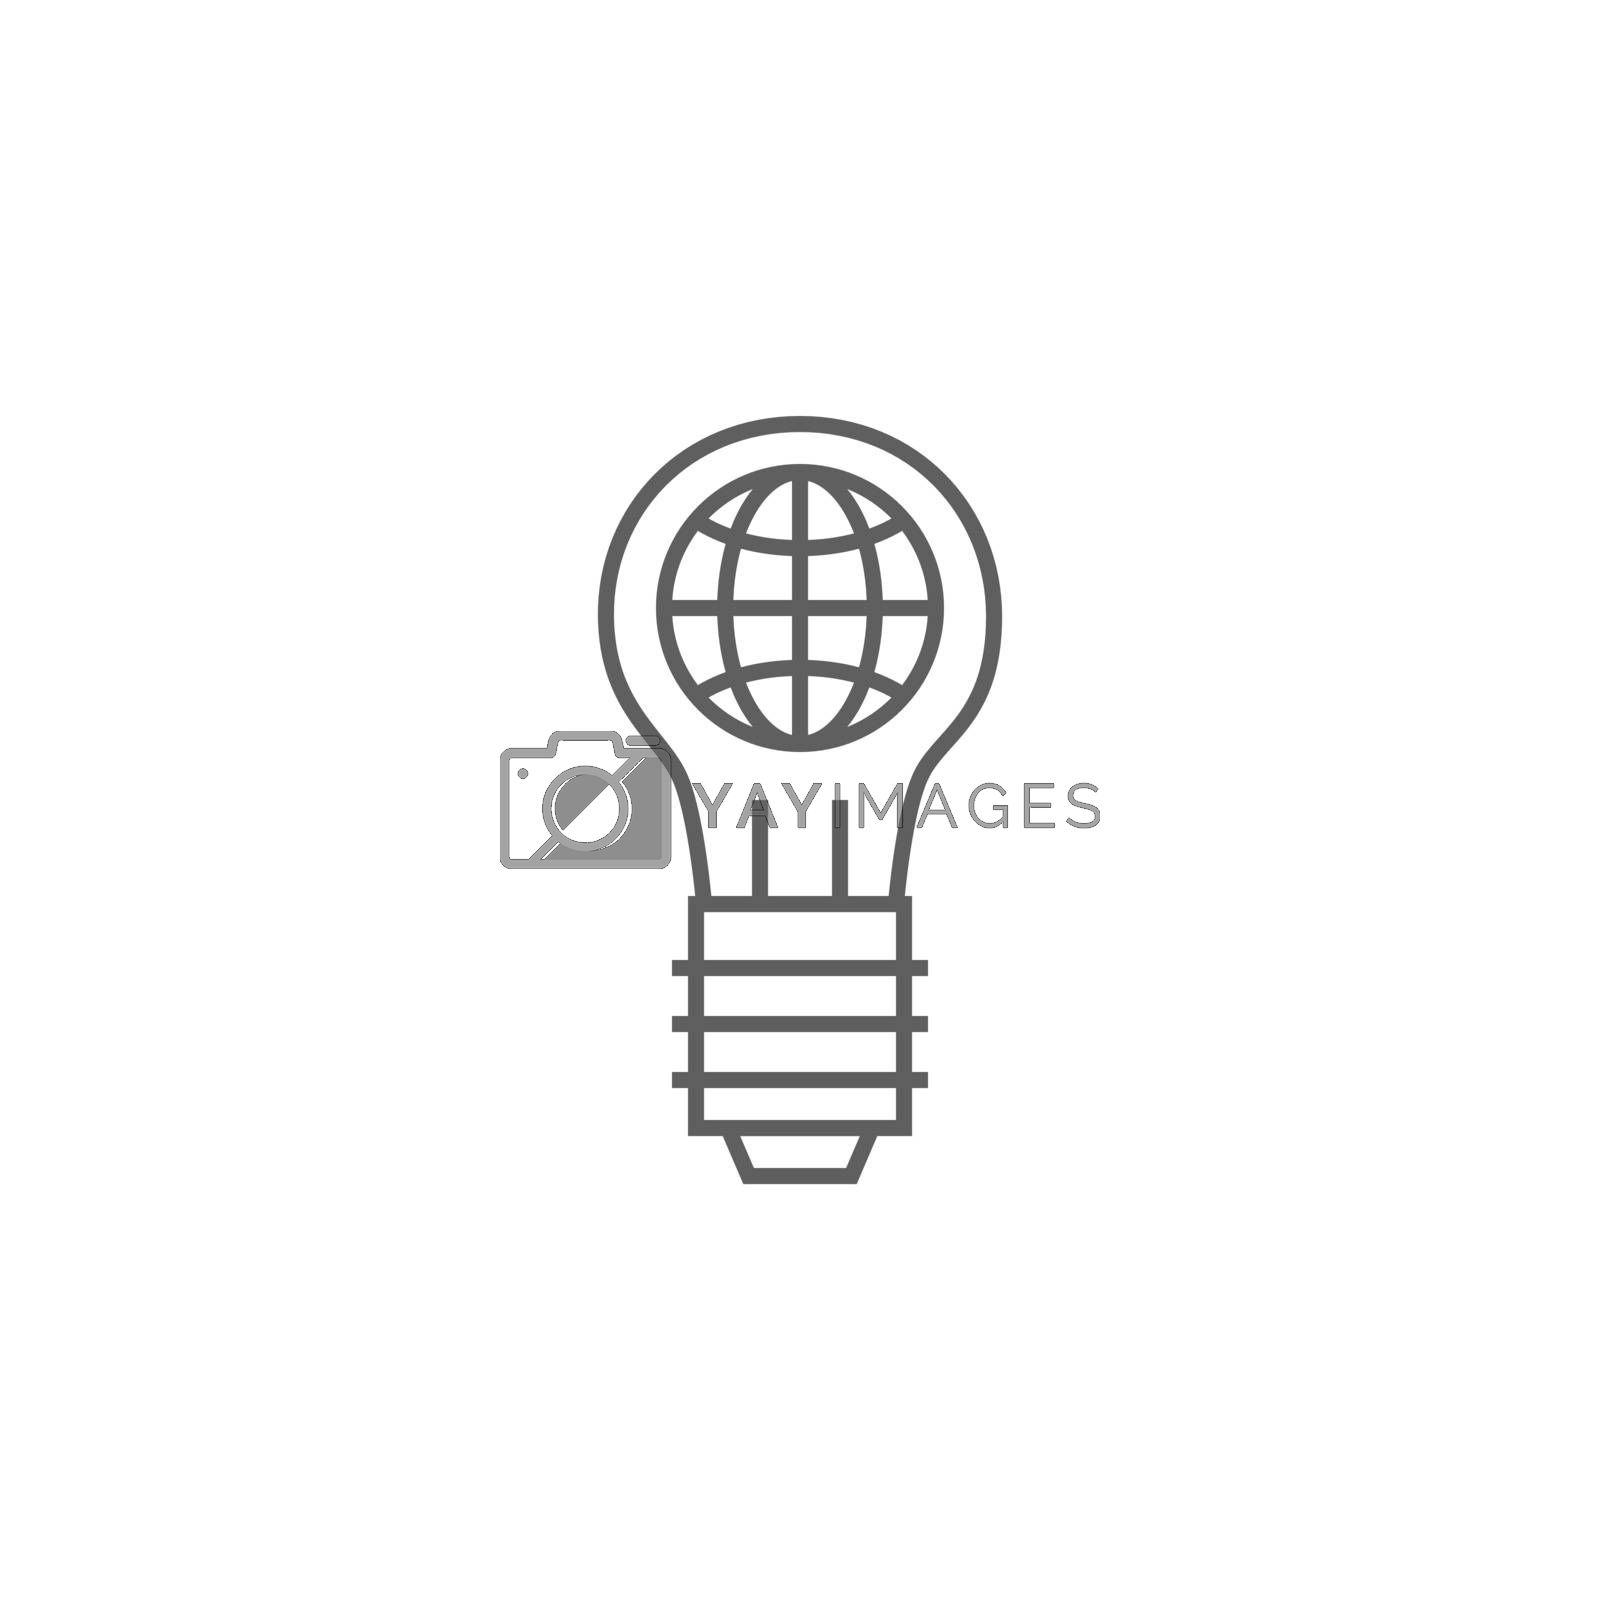 Global Solution Related Vector Thin Line Icon. Isolated on White Background. Editable Stroke. Vector Illustration.